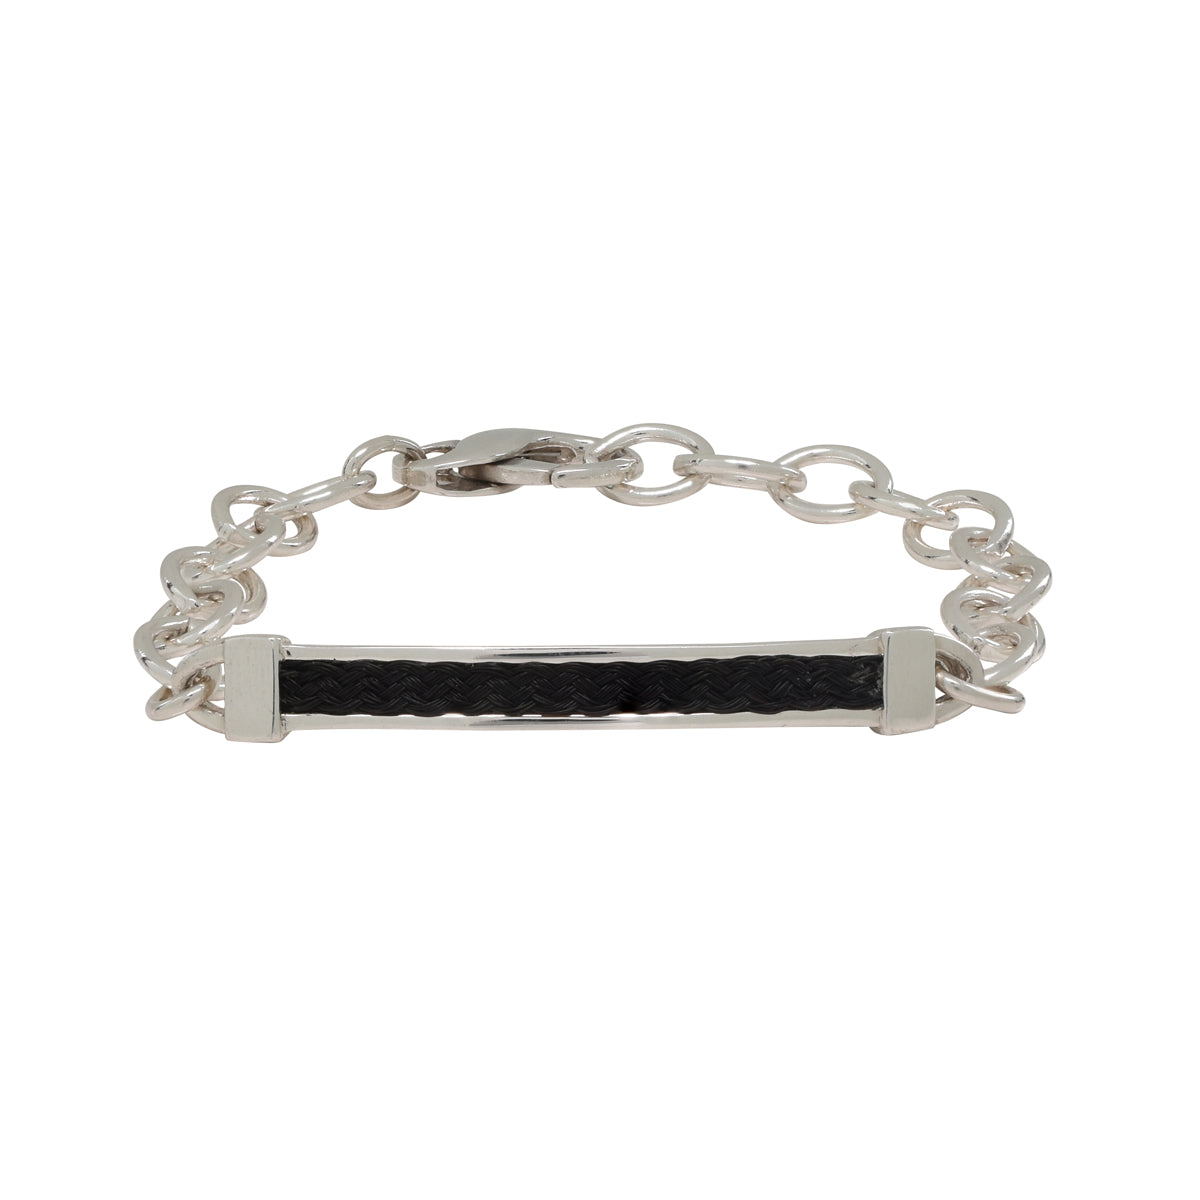 Bar Bracelet with Horsehair Braid Inset